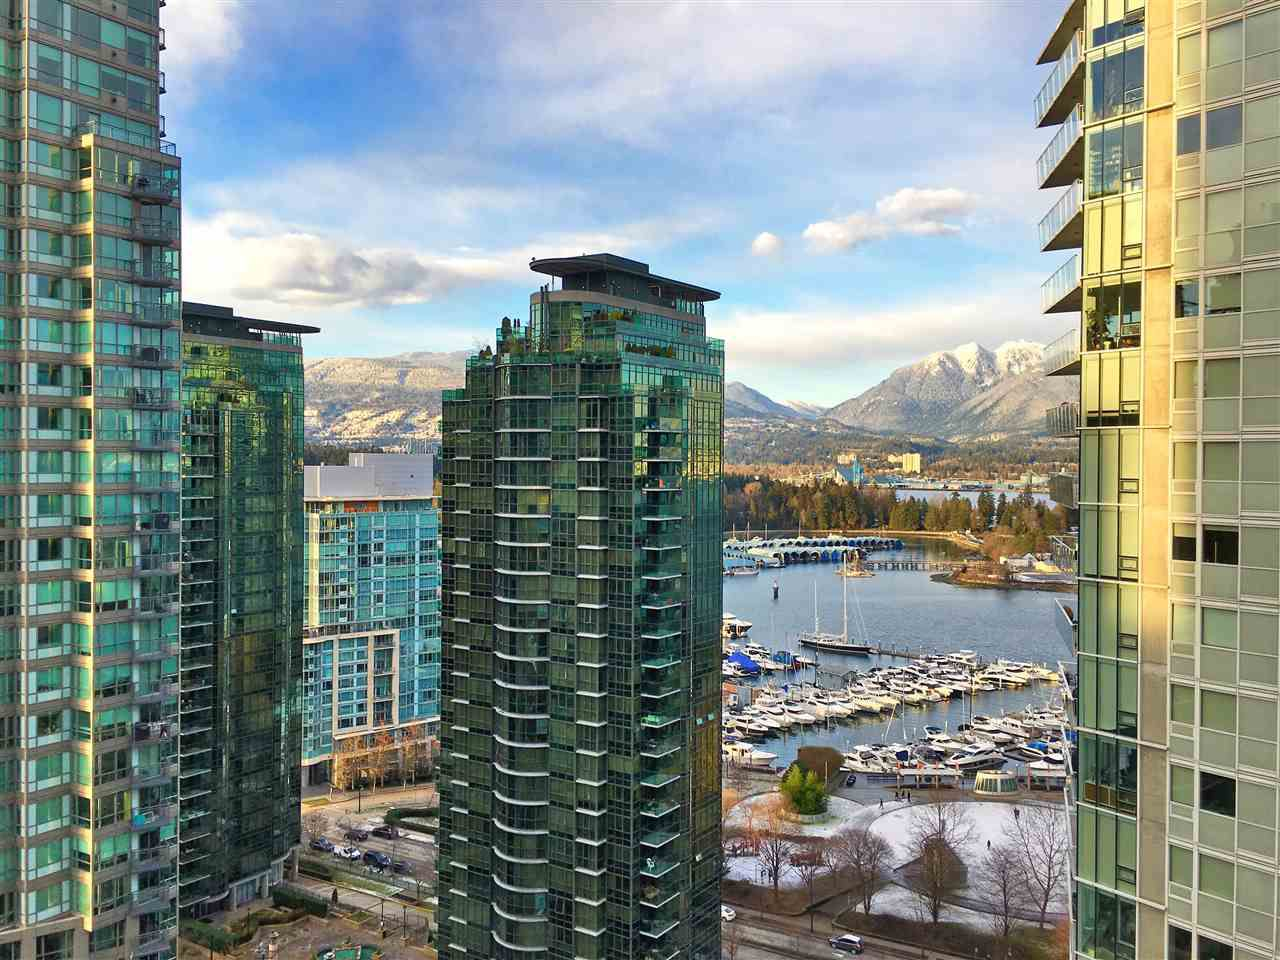 """Main Photo: 2102 1238 MELVILLE Street in Vancouver: Coal Harbour Condo for sale in """"POINT CLAIRE"""" (Vancouver West)  : MLS®# R2144697"""